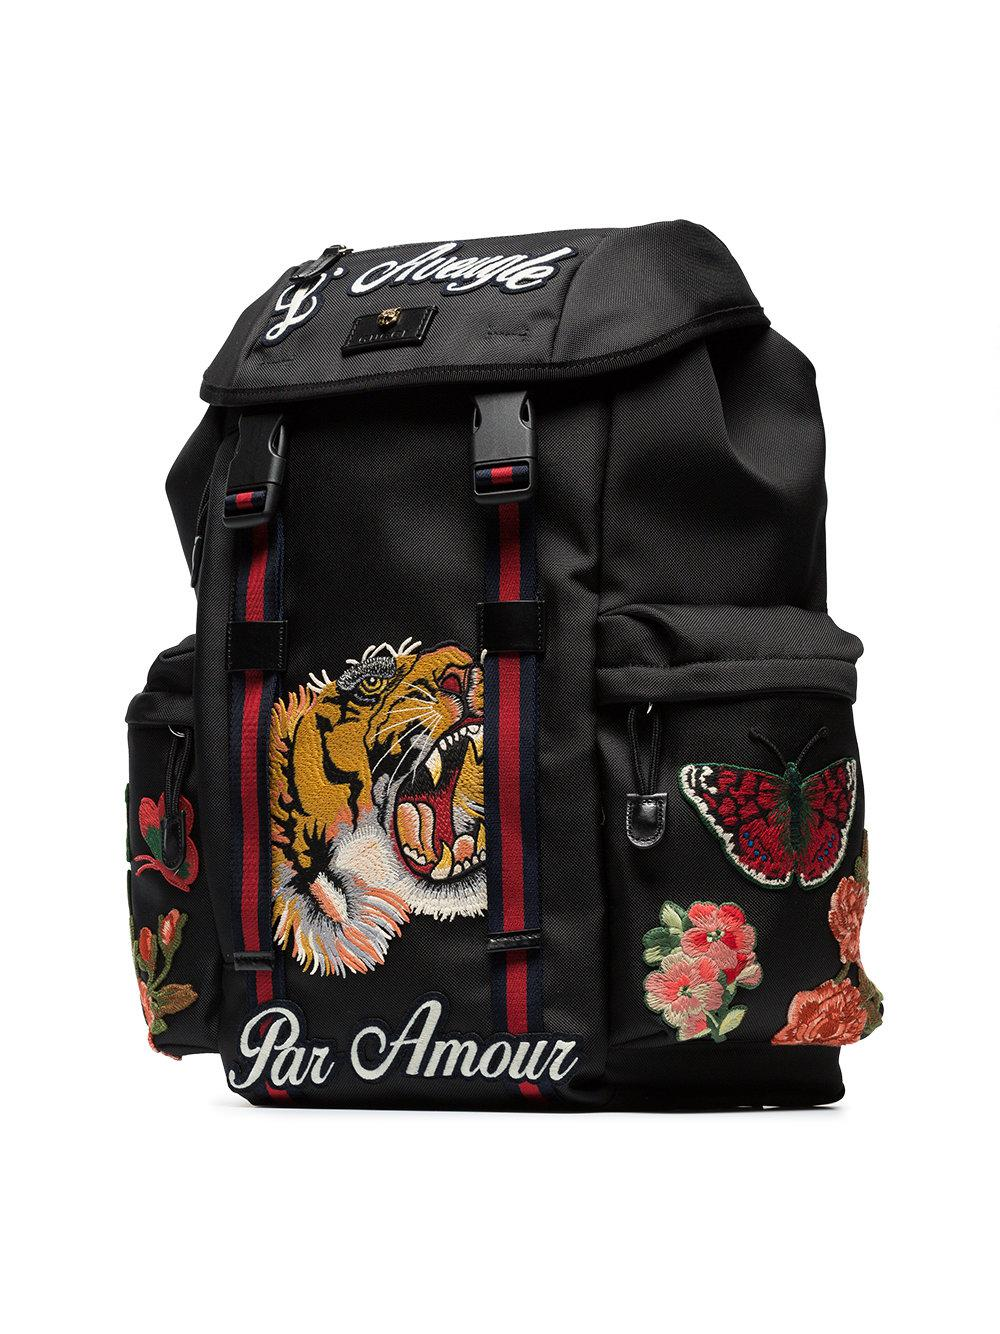 Lyst - Gucci Black Tiger Embroidered Backpack in Black for Men e1322e86d355a